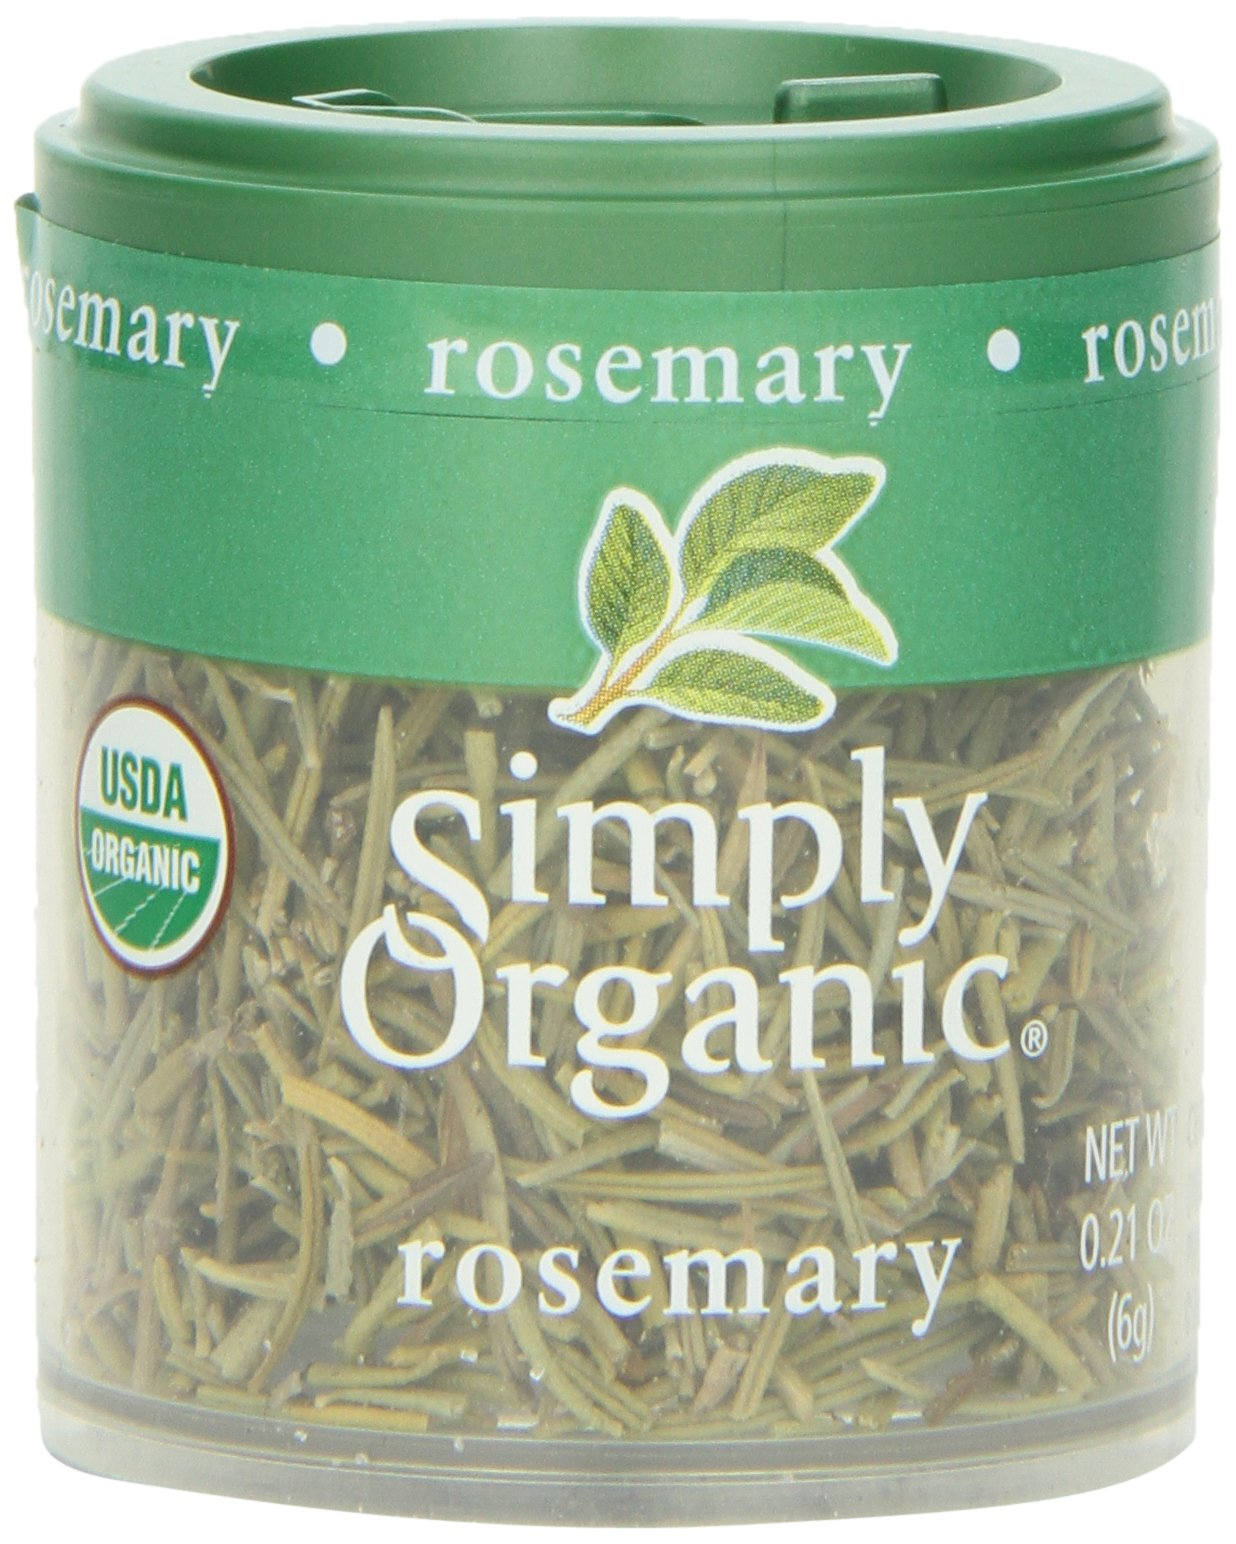 Simply Organic Rosemary Leaf Whole Certified Organic, 0.21-Ounce Containers (Pack of 6)